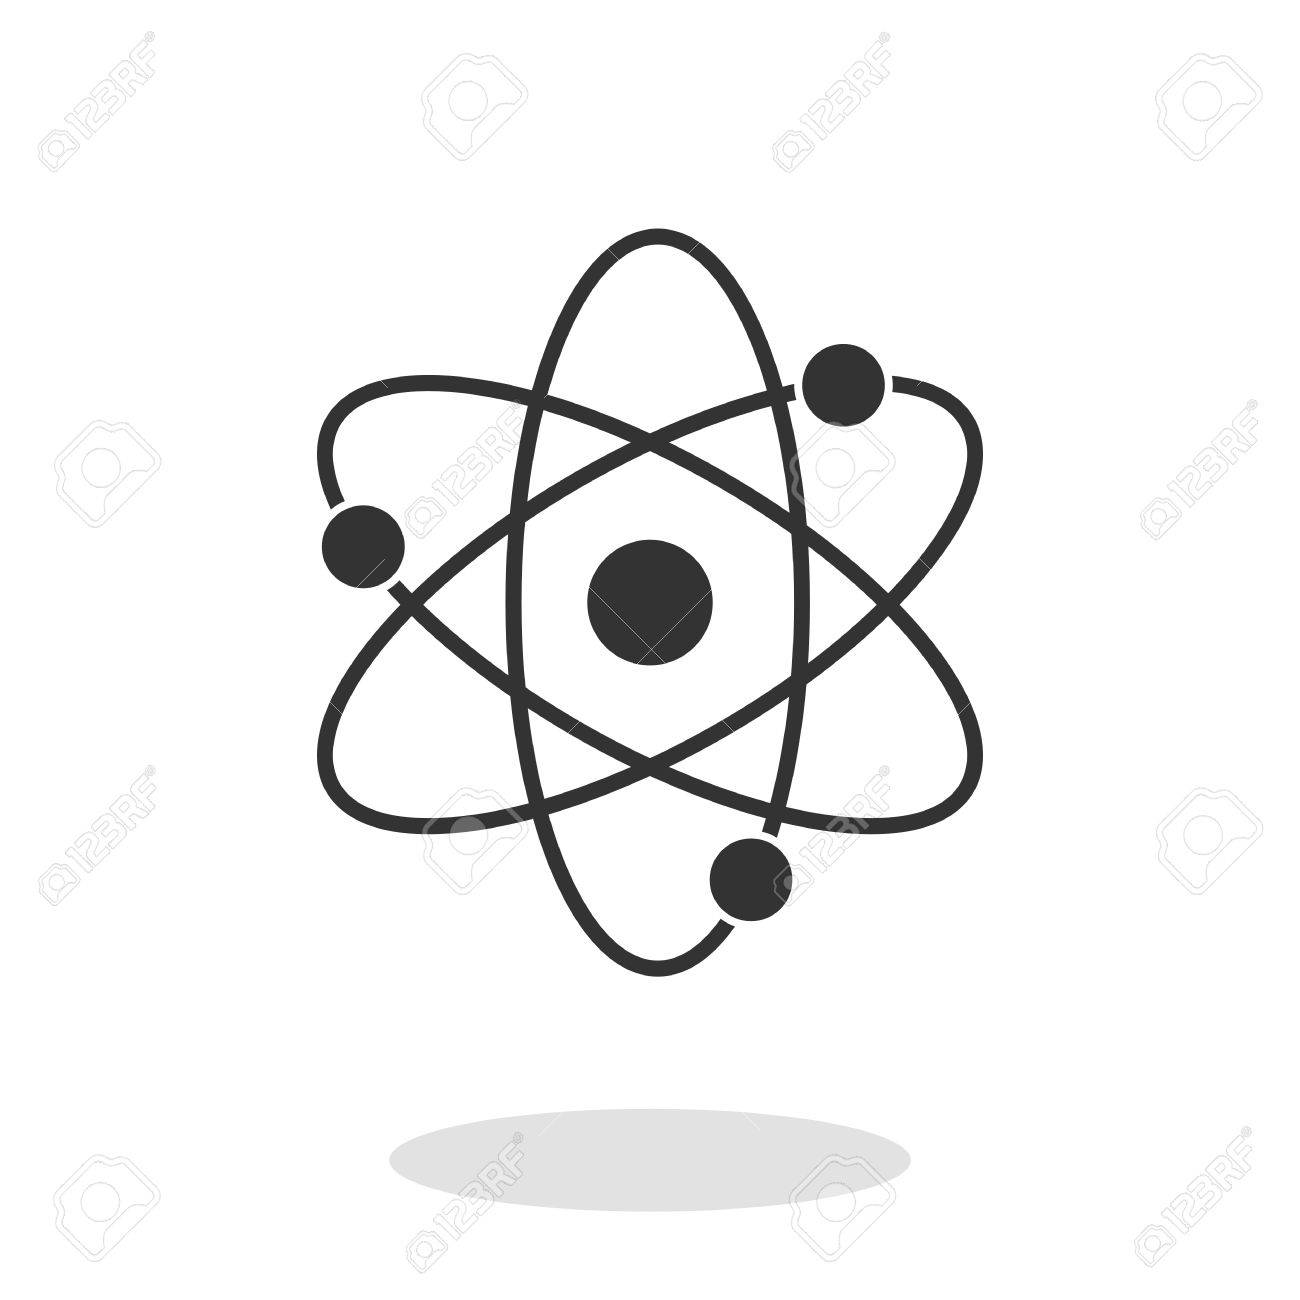 Atom icon with electrons and protons in trendy flat style isolated atom icon with electrons and protons in trendy flat style isolated on white background symbol buycottarizona Images